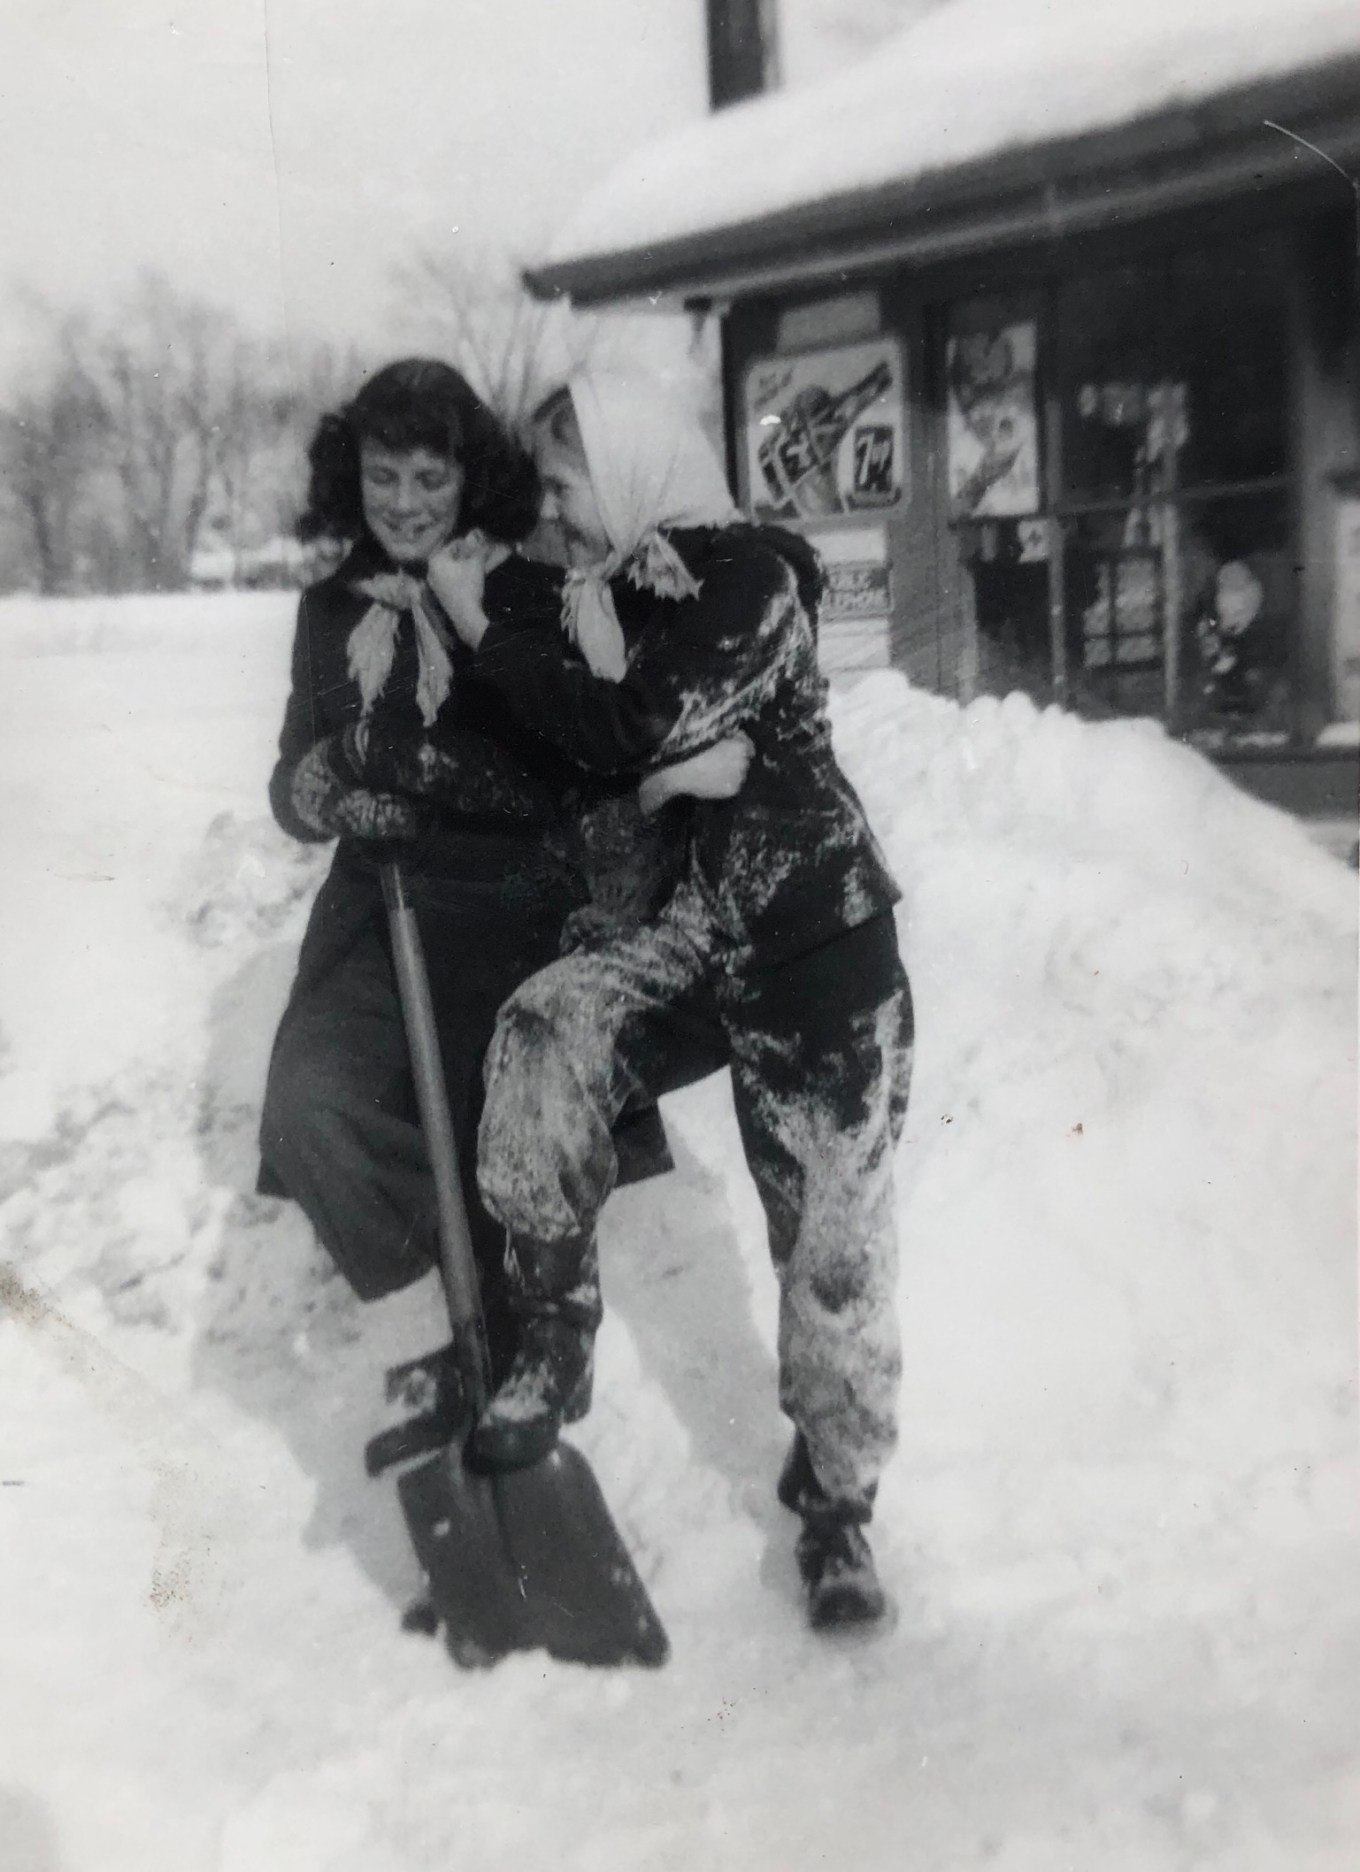 Frances Galipeau (l) and Dorothy Carpenter, allegedly shoveling